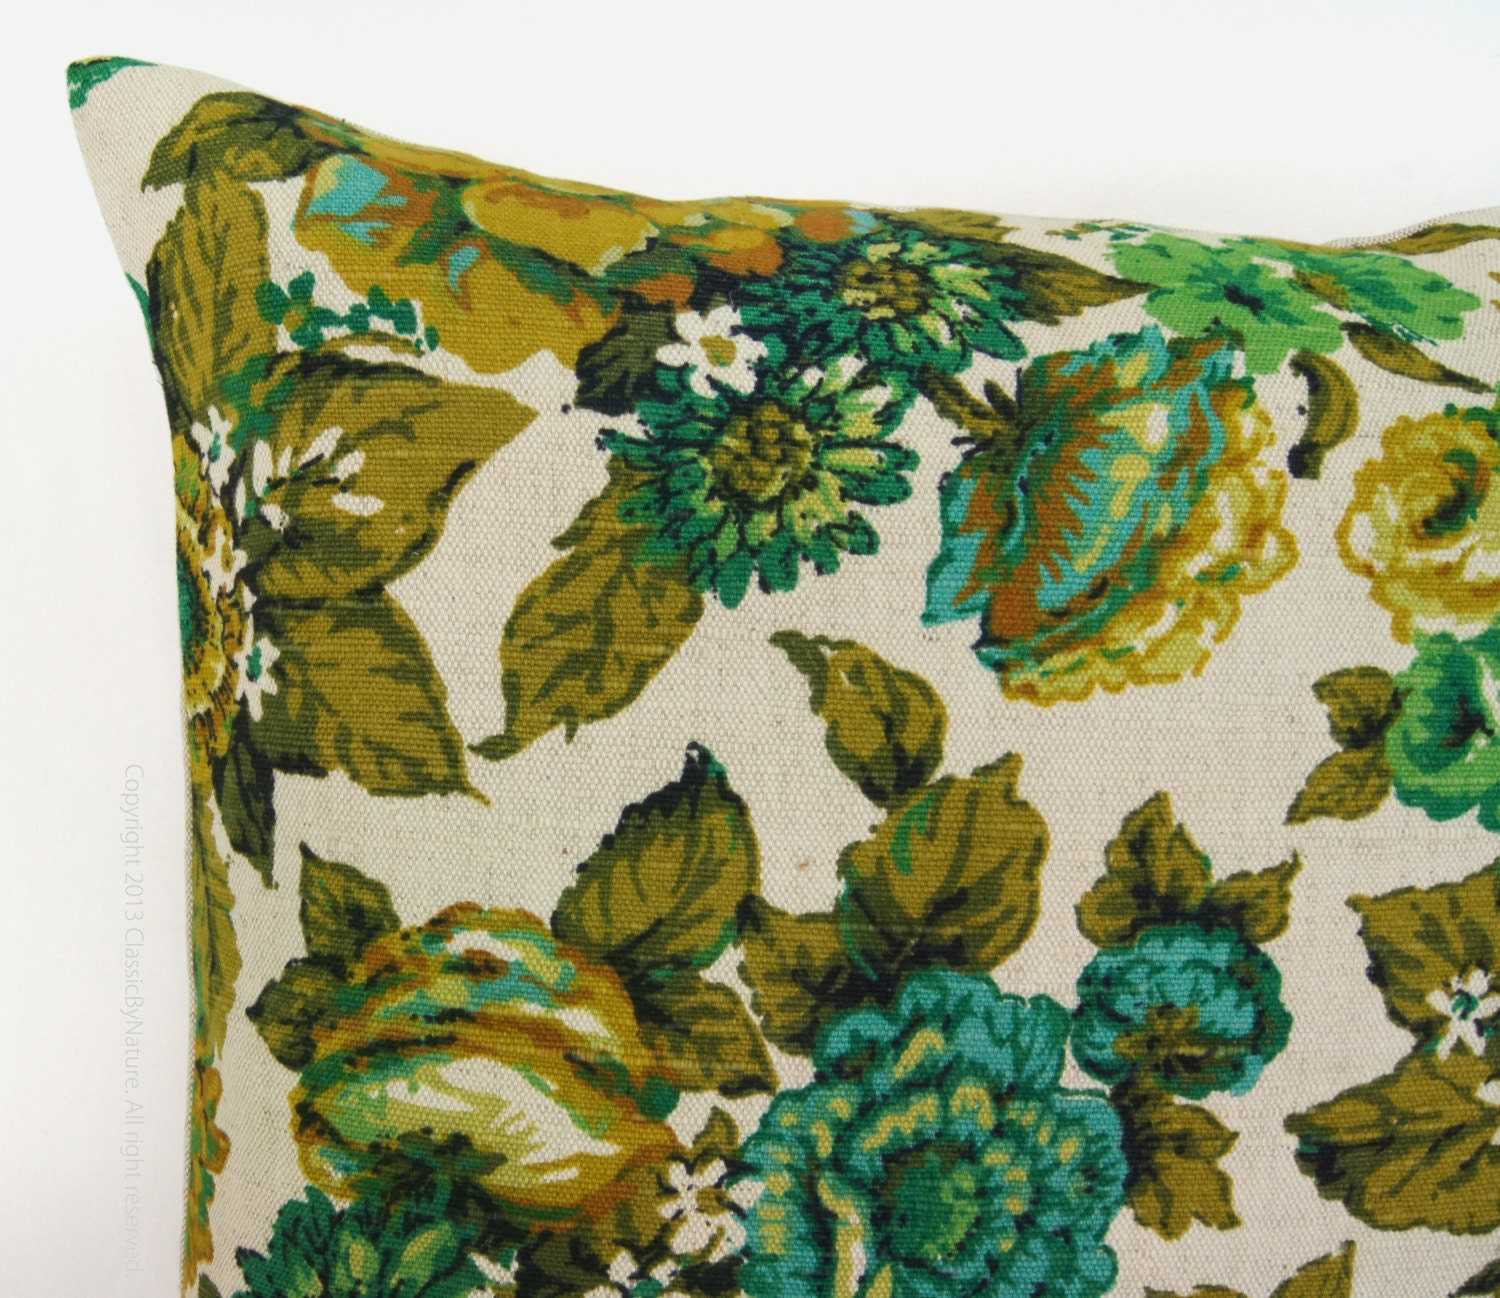 Throw Pillows Vintage Fabric : Floral pillow cover ? Vintage fabric ? Garden printed pattern in emerald, turquoise, yellow ...